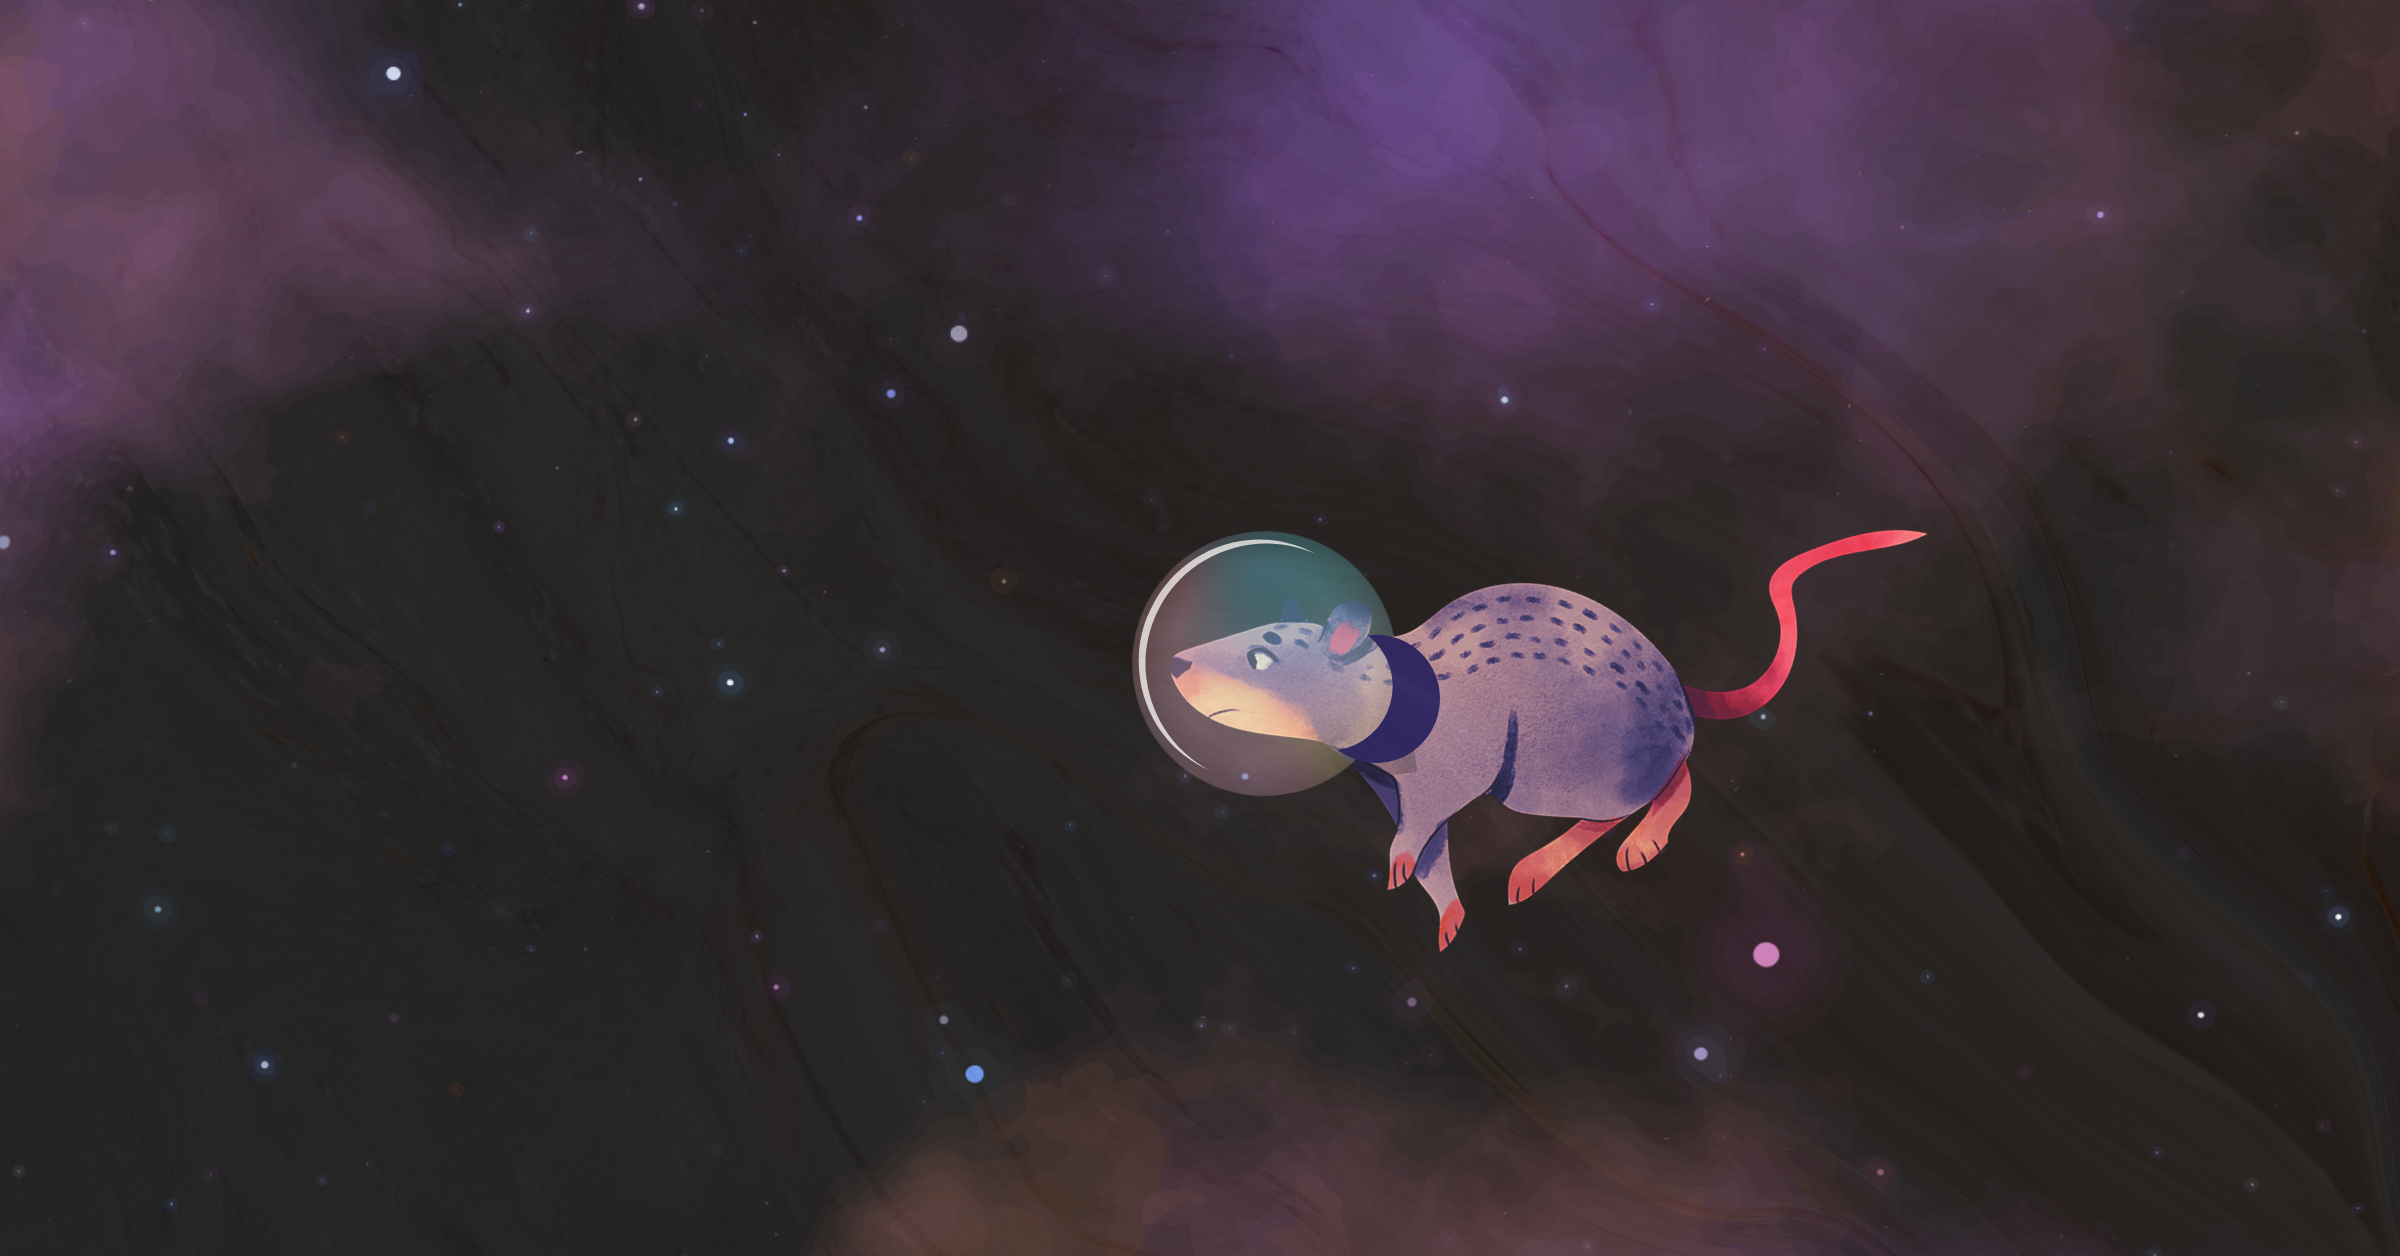 Cartoon image of a mouse in outer space